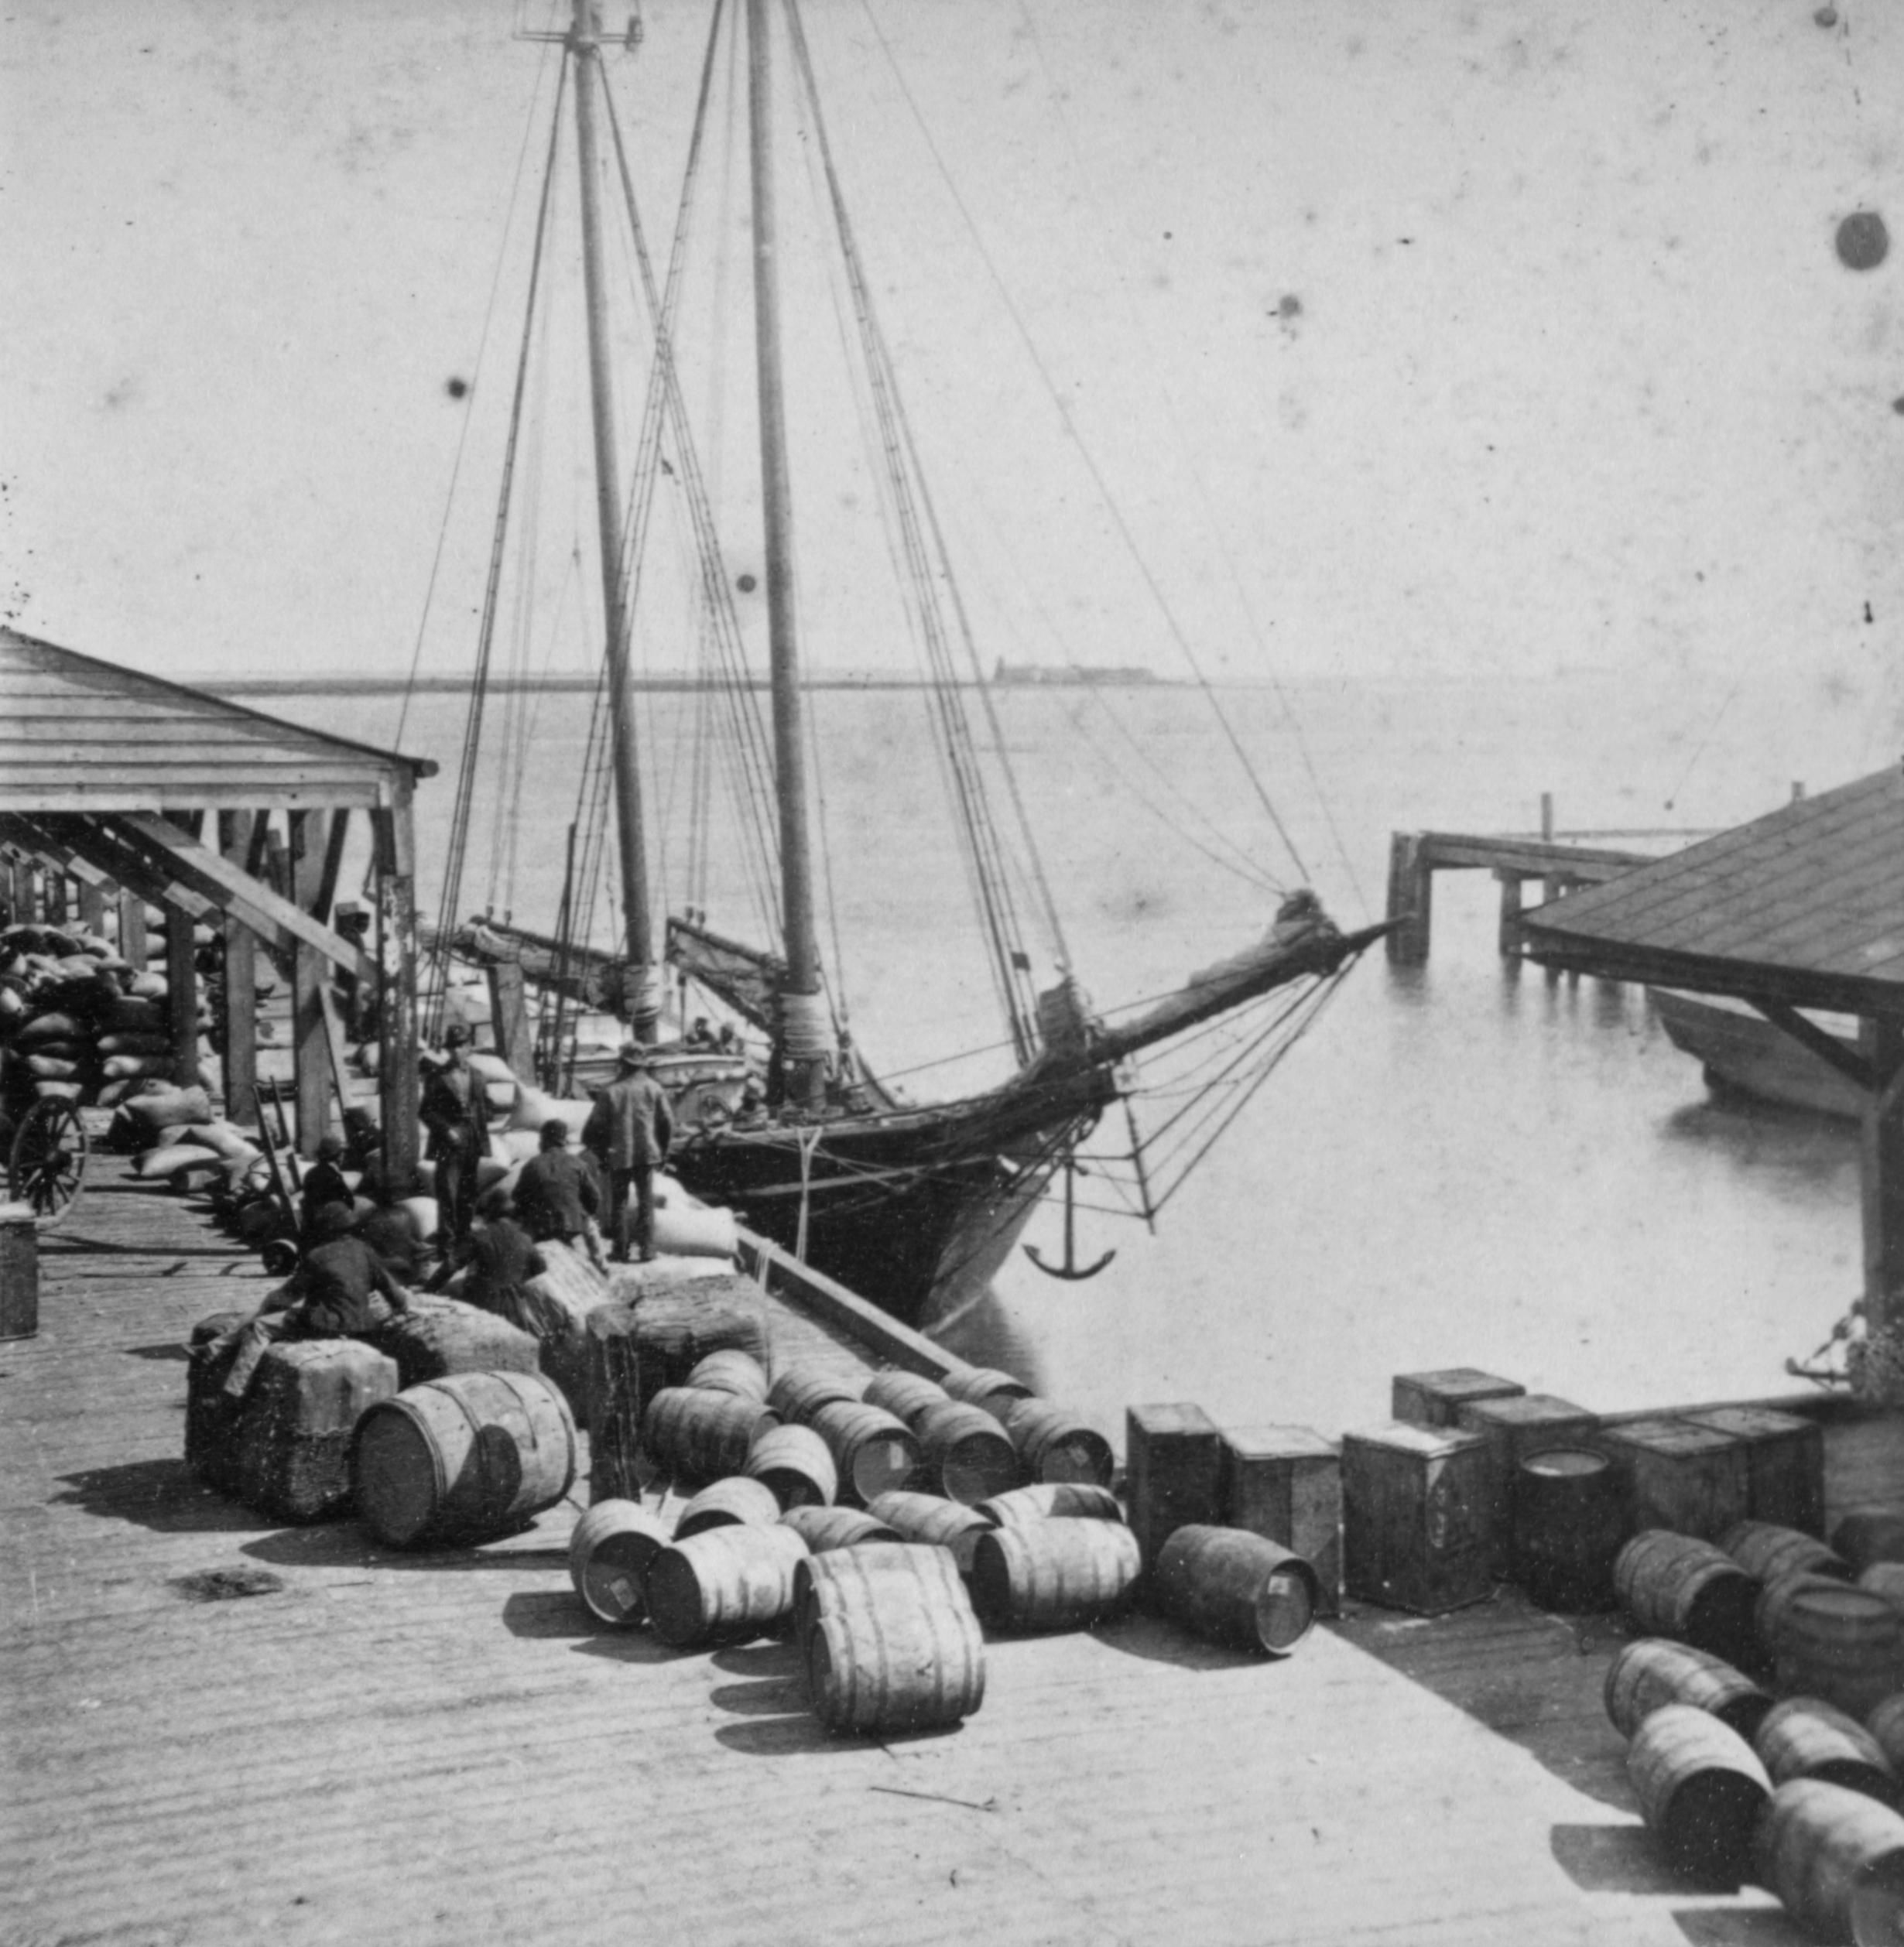 Click this image to show the full-size version. Supply ship at dock in Charleston Harbor. George L. Cook photographer who was evacuated from Charleston before it fell to the Union. Could this be a resupply boat for Sumter or a blockade runner? Fort Sumter seen in the distance.